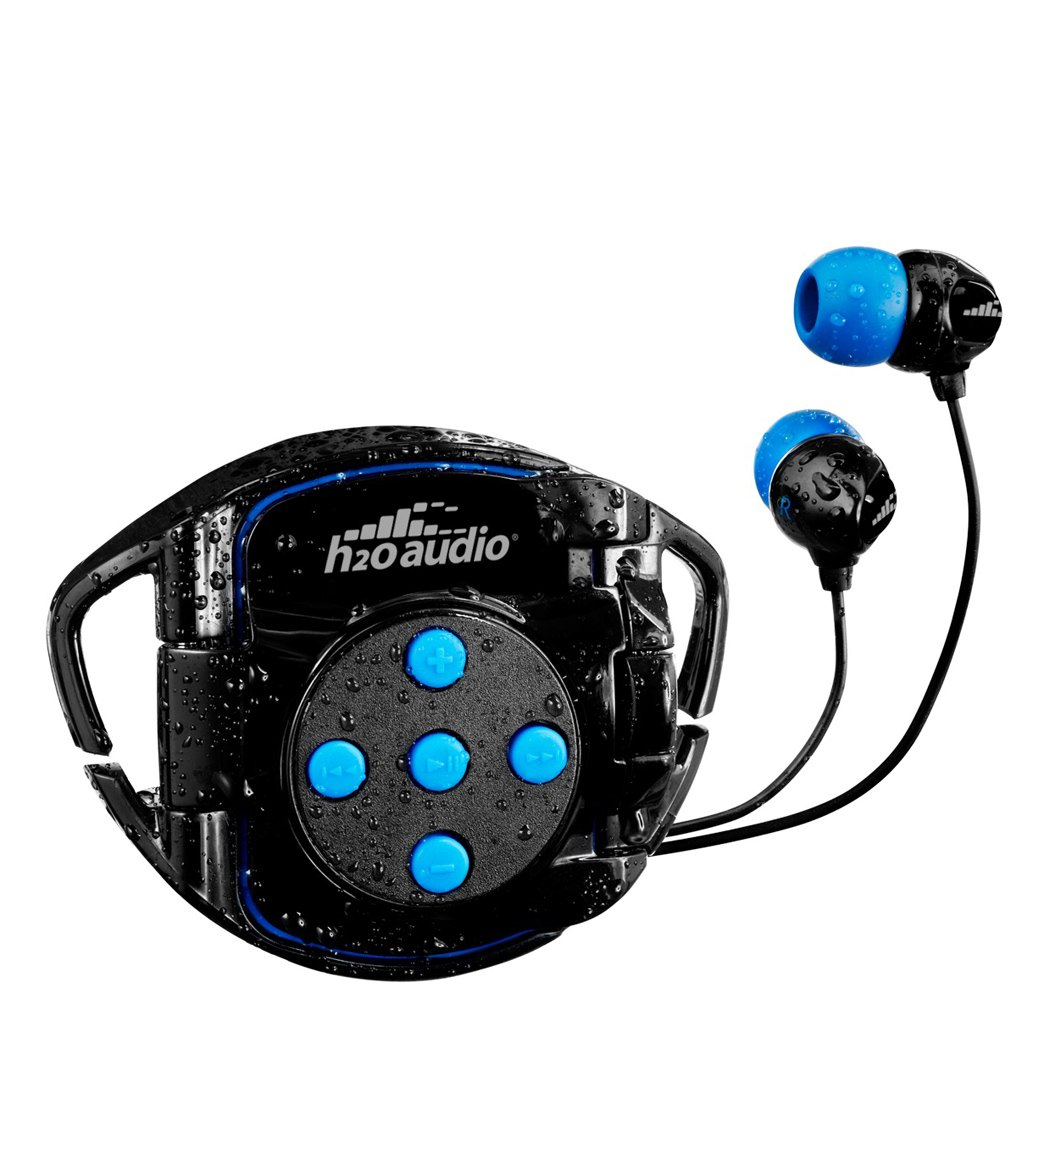 h2o audio interval 4g waterproof case and headphones for the ipod